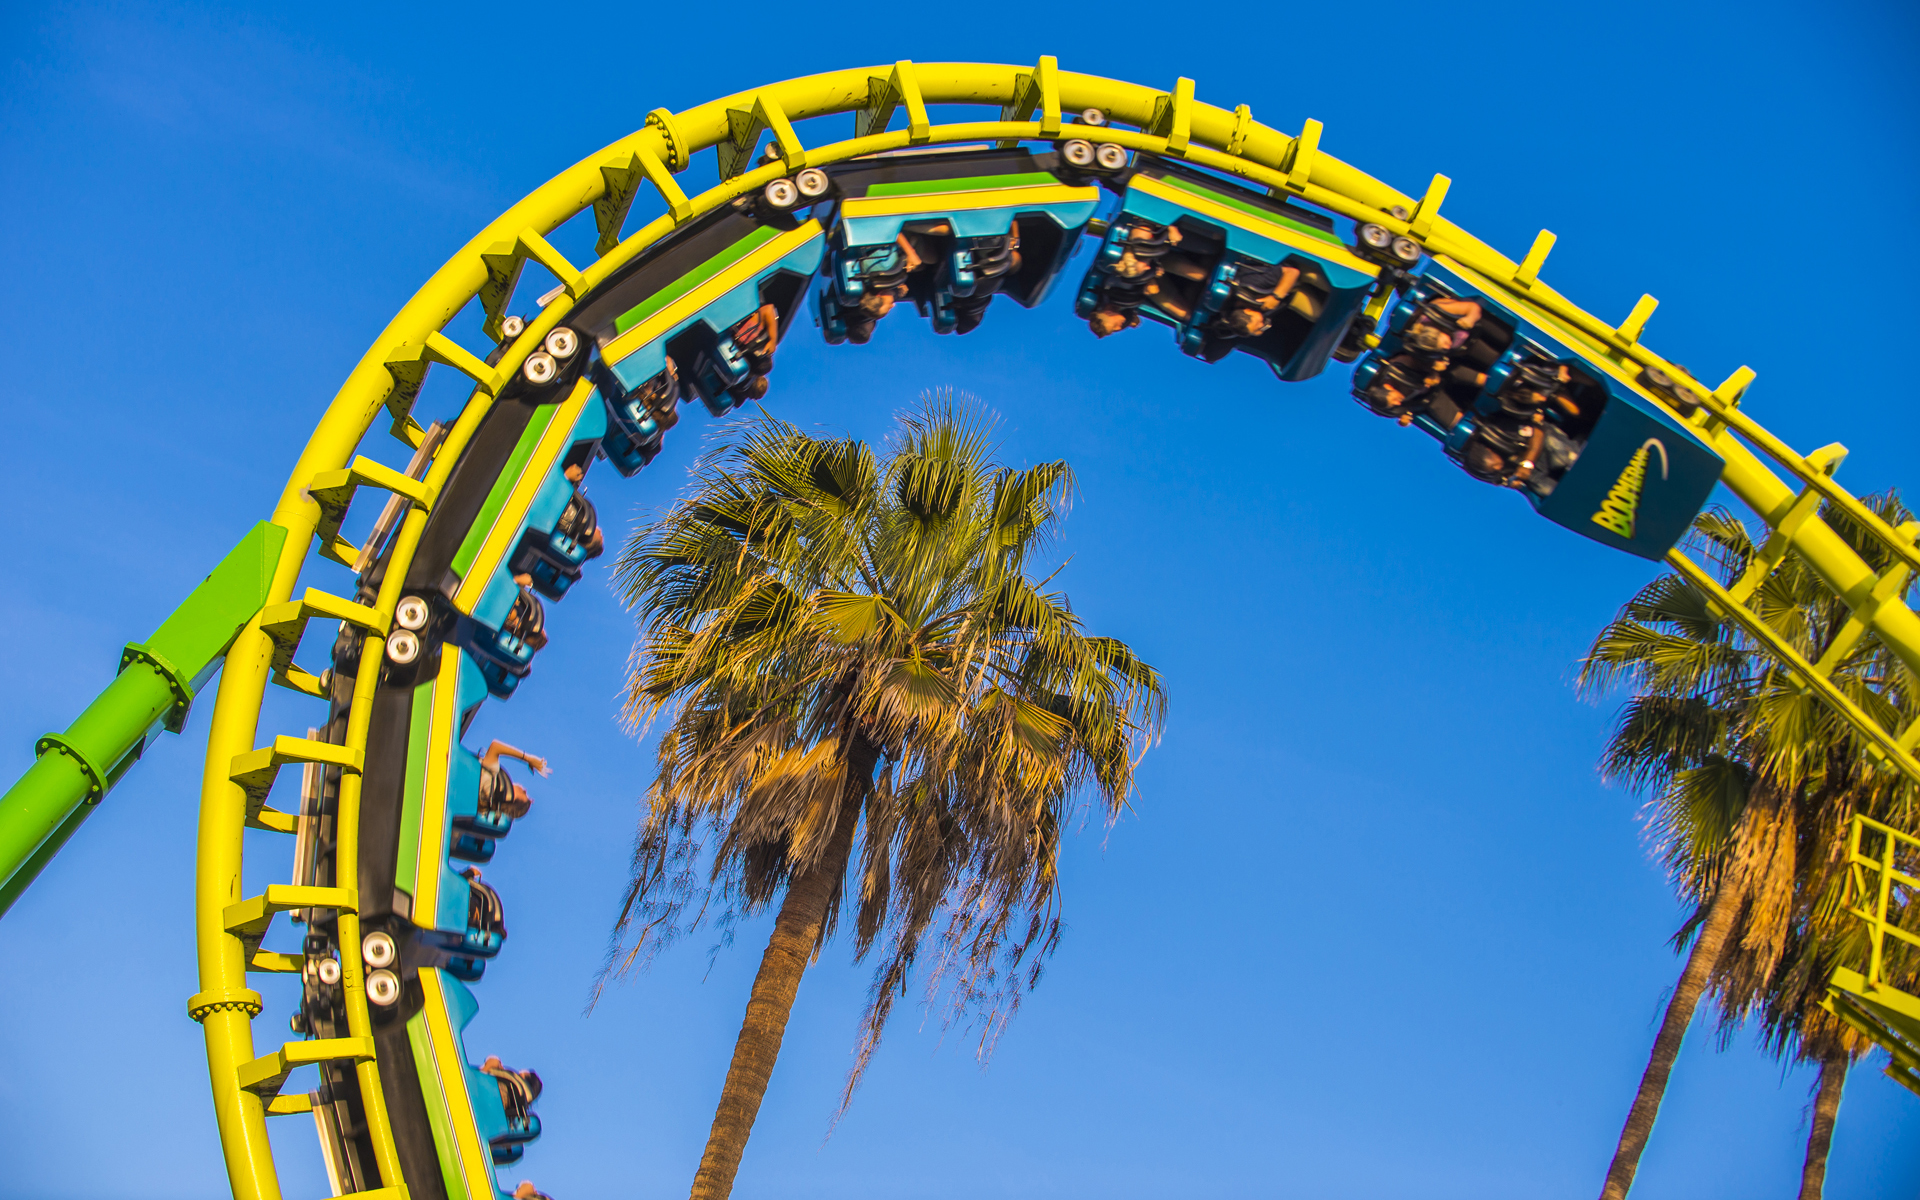 Knott S Berry Farm Update Sol Spin Around The Park And R I P Boomerang Westcoaster